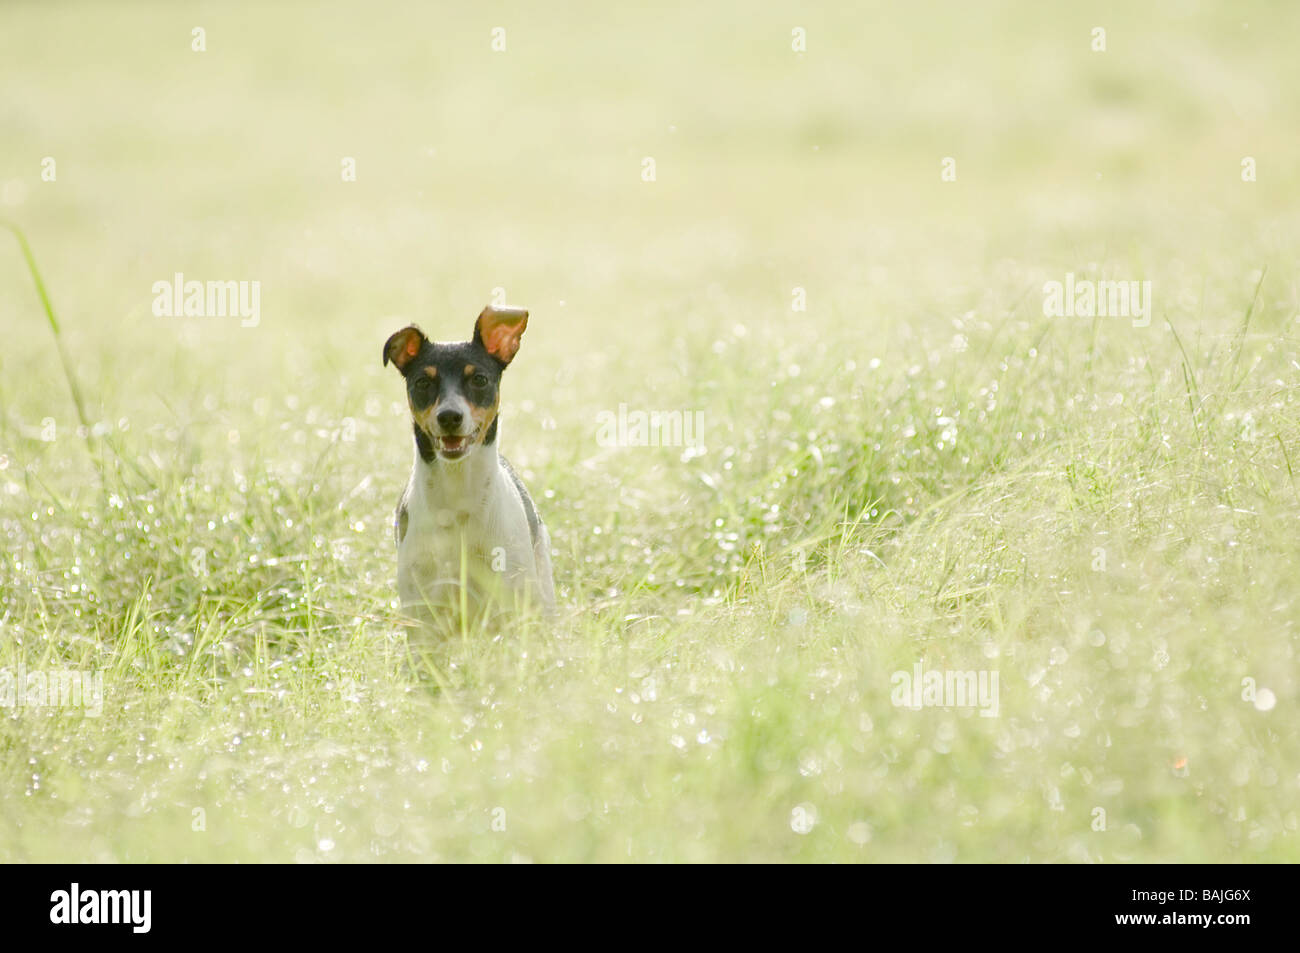 Tri-colored rat terrier sitting in a field of tall grass - Stock Image